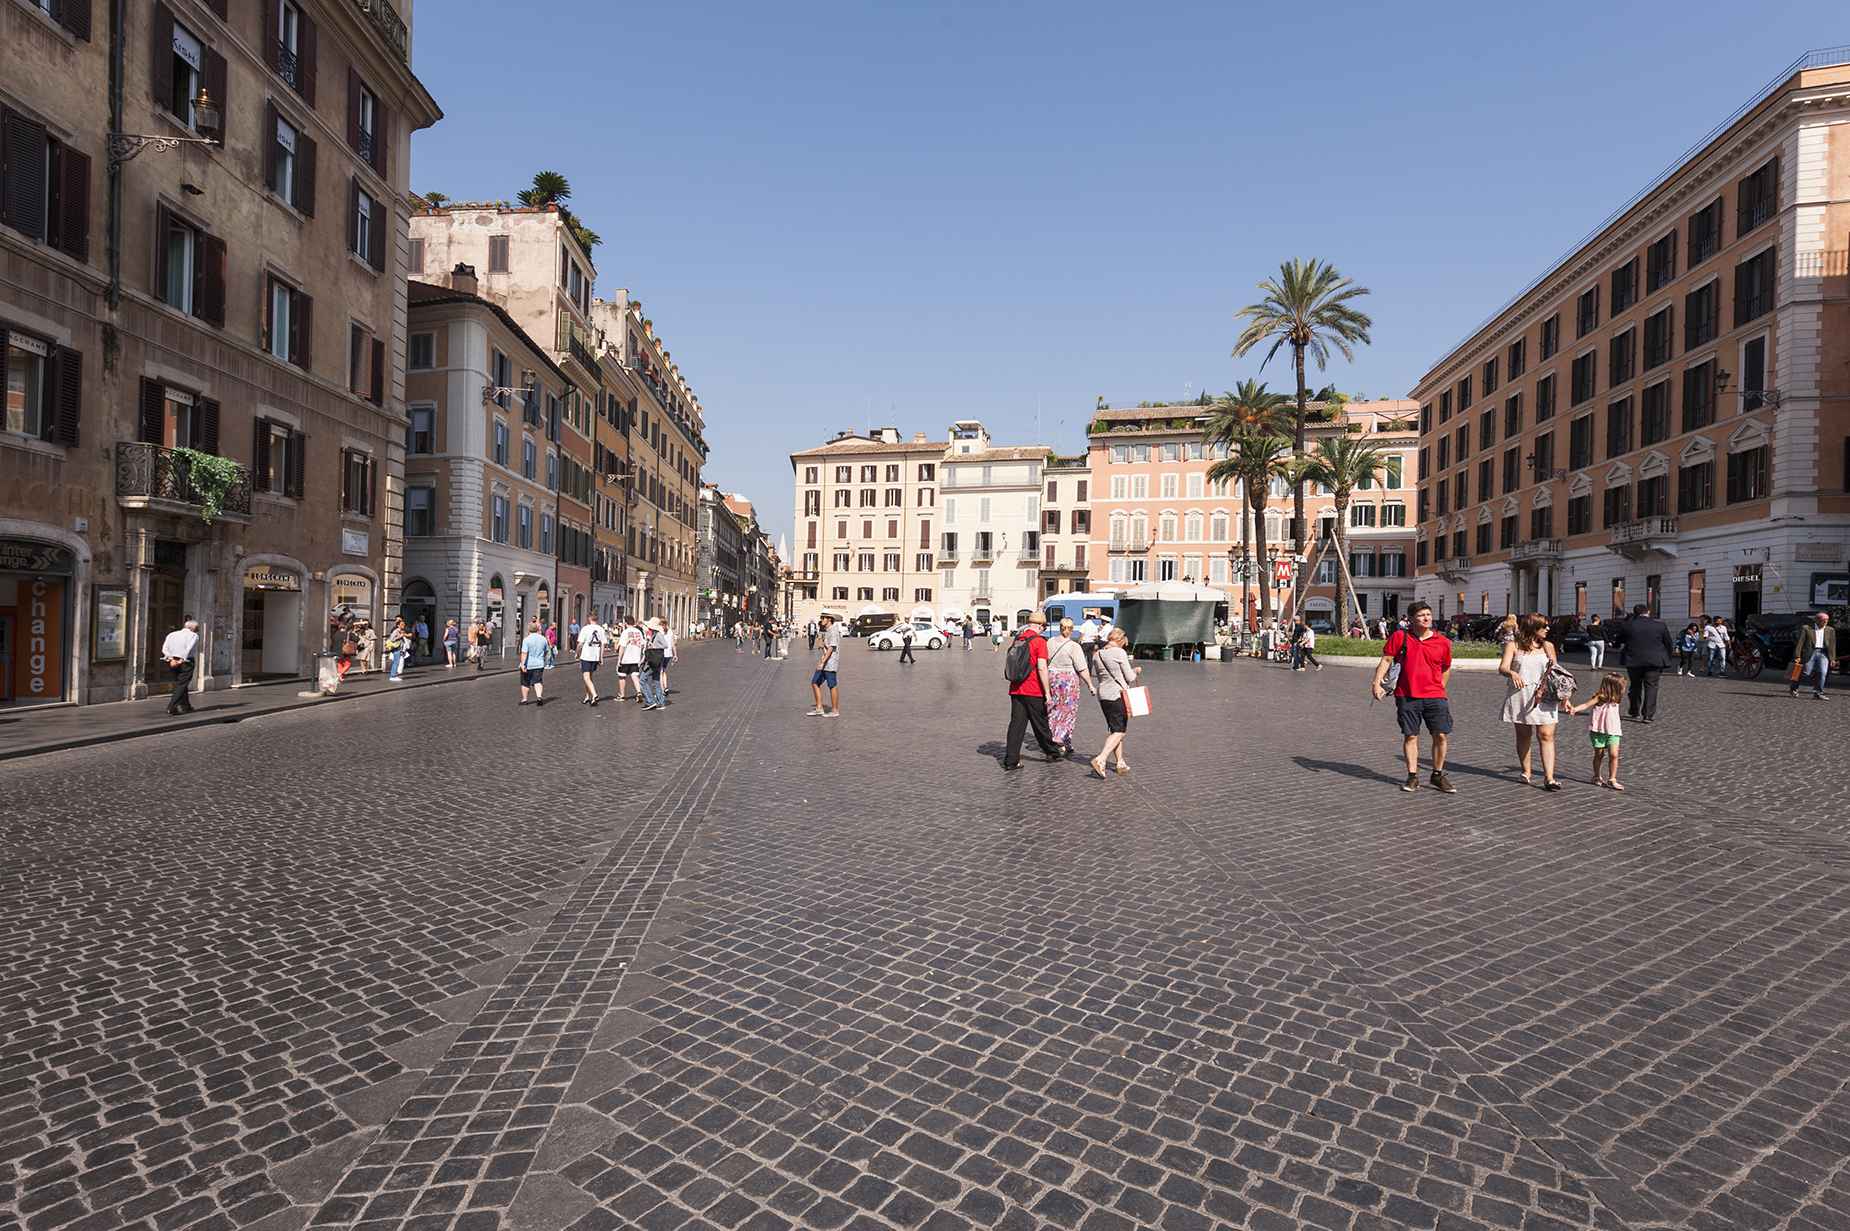 Additional photo for property listing at Magnifico appartamento affacciato su Piazza di Spagna Rome, Roma Italia